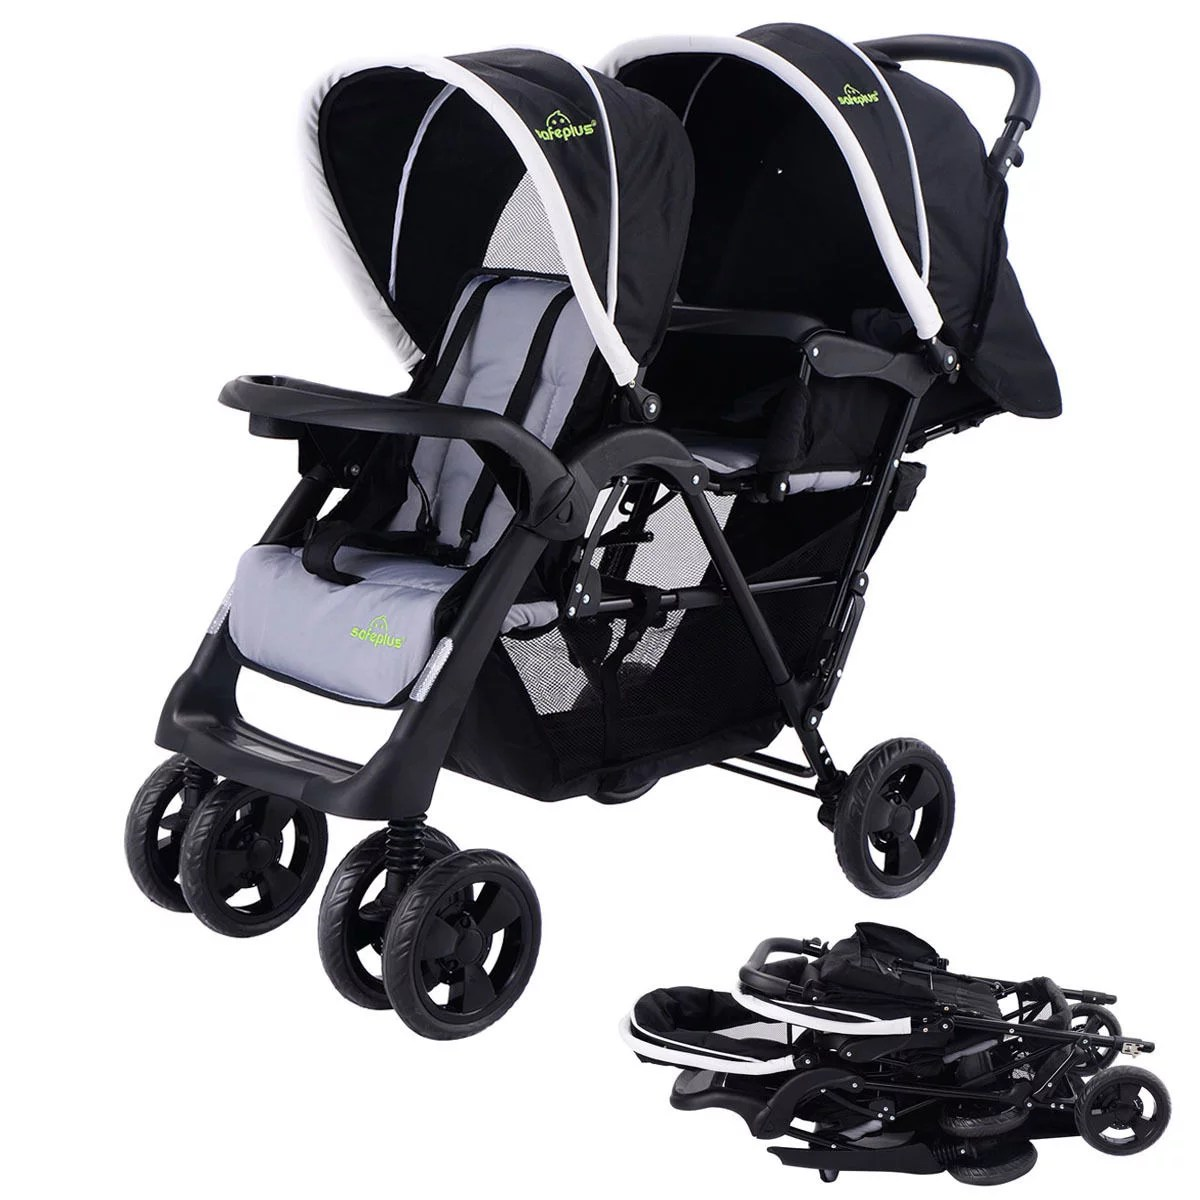 Twin Stroller And Carseat Costway Foldable Twin Baby Double Stroller Kids Jogger Travel Infant Pushchair